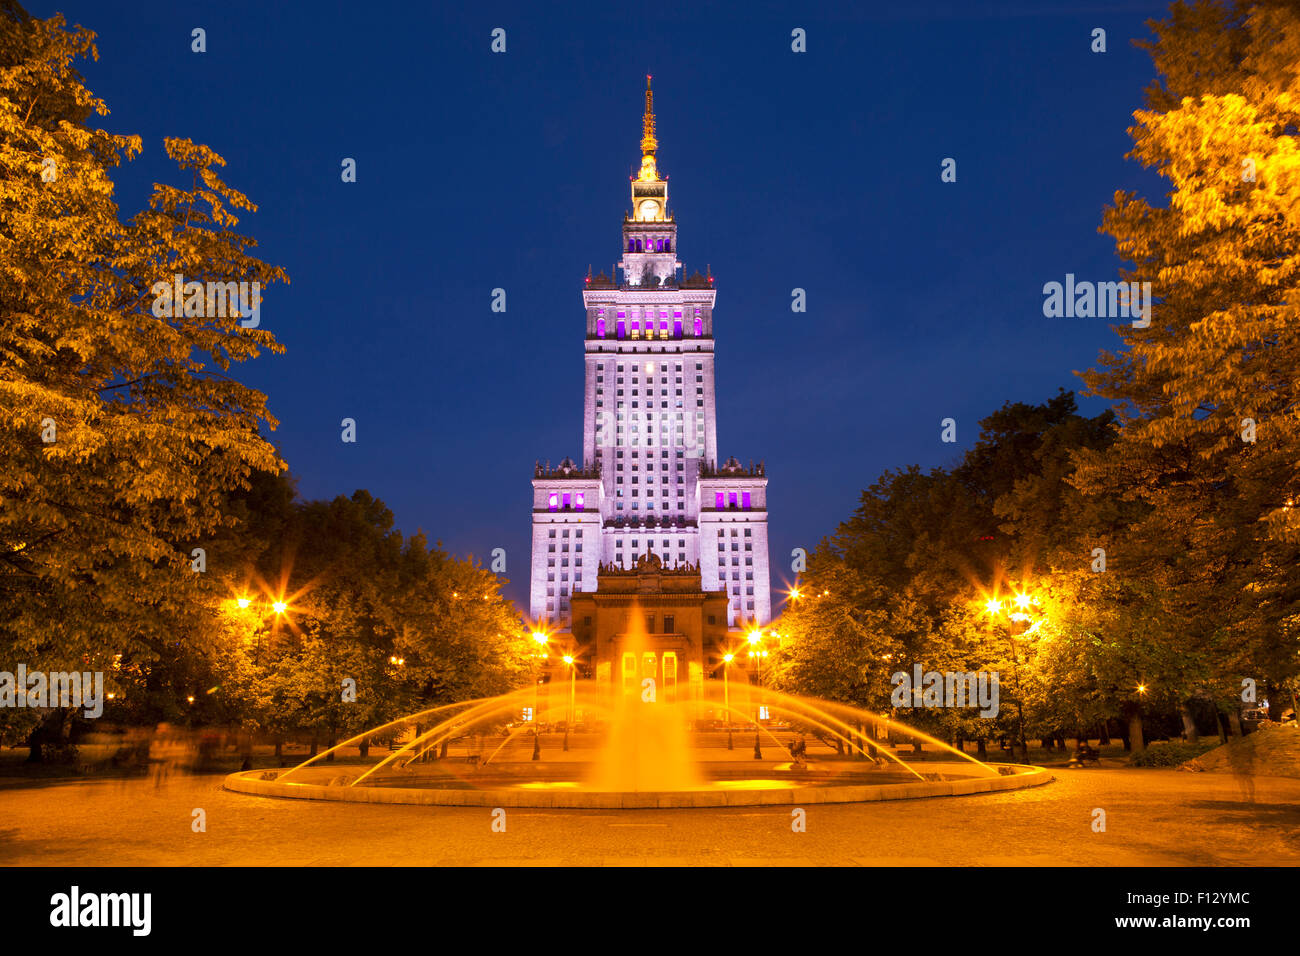 Le Palais de la Culture et de la science à Varsovie, Pologne la nuit. Photo Stock